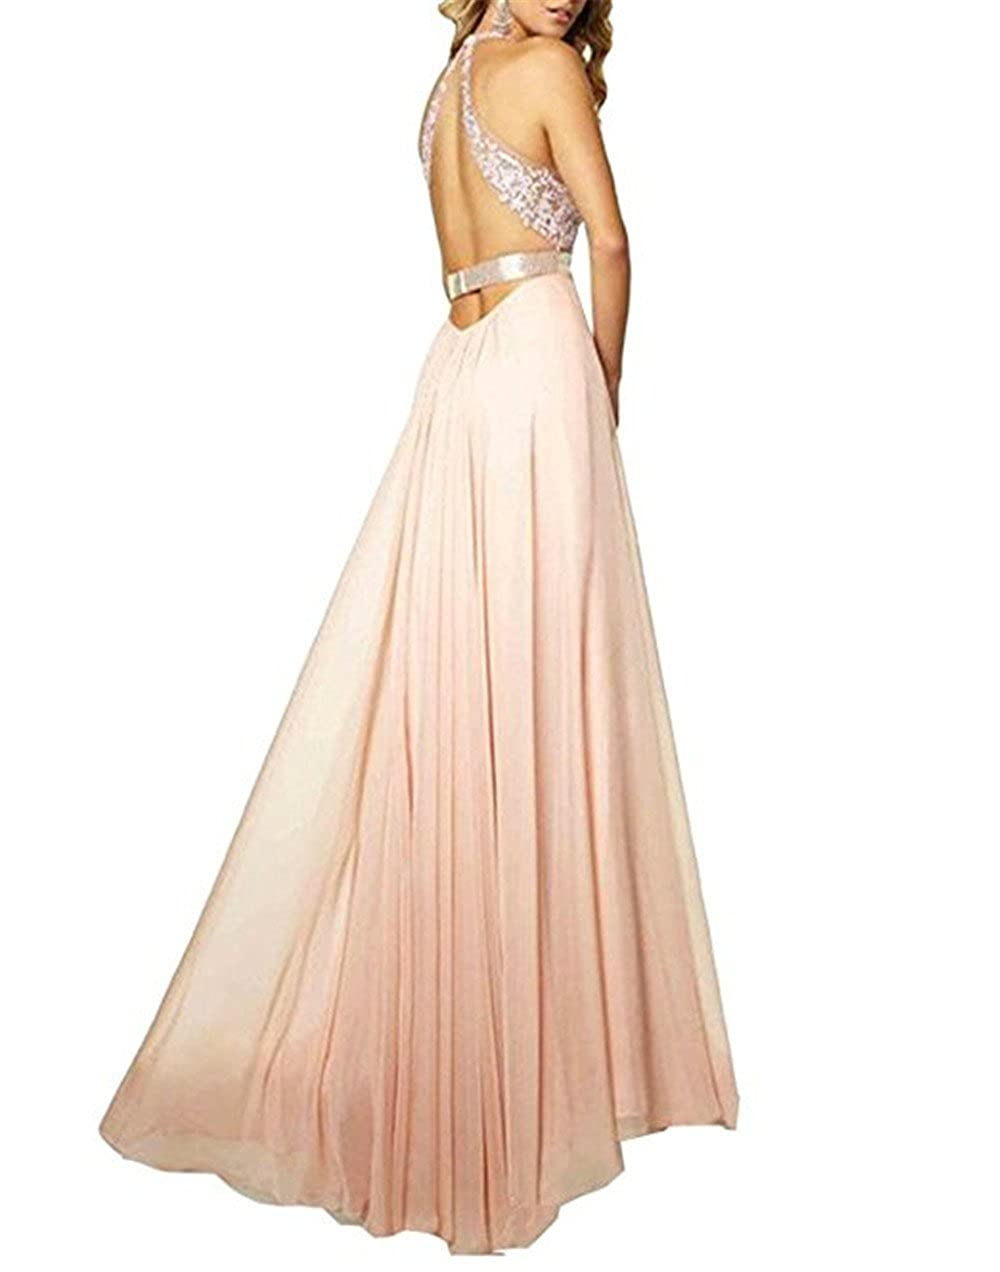 YSMei Womens V Neck Side Split Long Prom Dress Backless Evening Party Gown P012